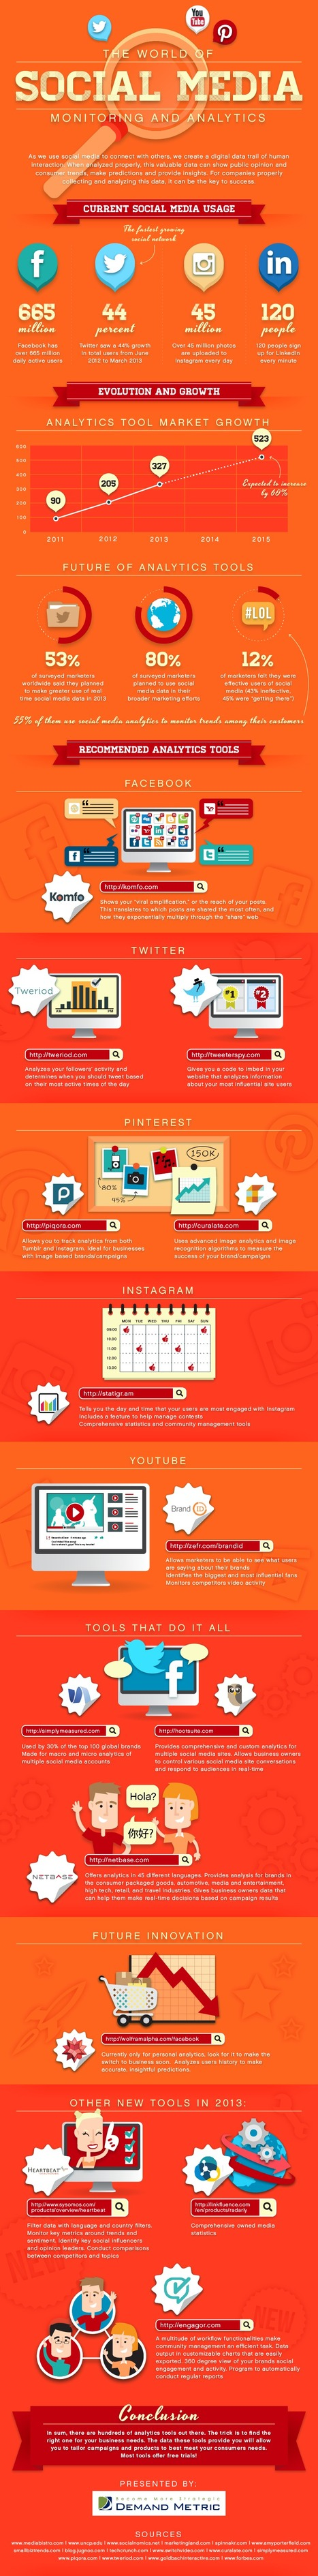 The World Of Social Media Monitoring And Analytics [INFOGRAPHIC] - AllTwitter | Better know and better use Social Media today (facebook, twitter...) | Scoop.it